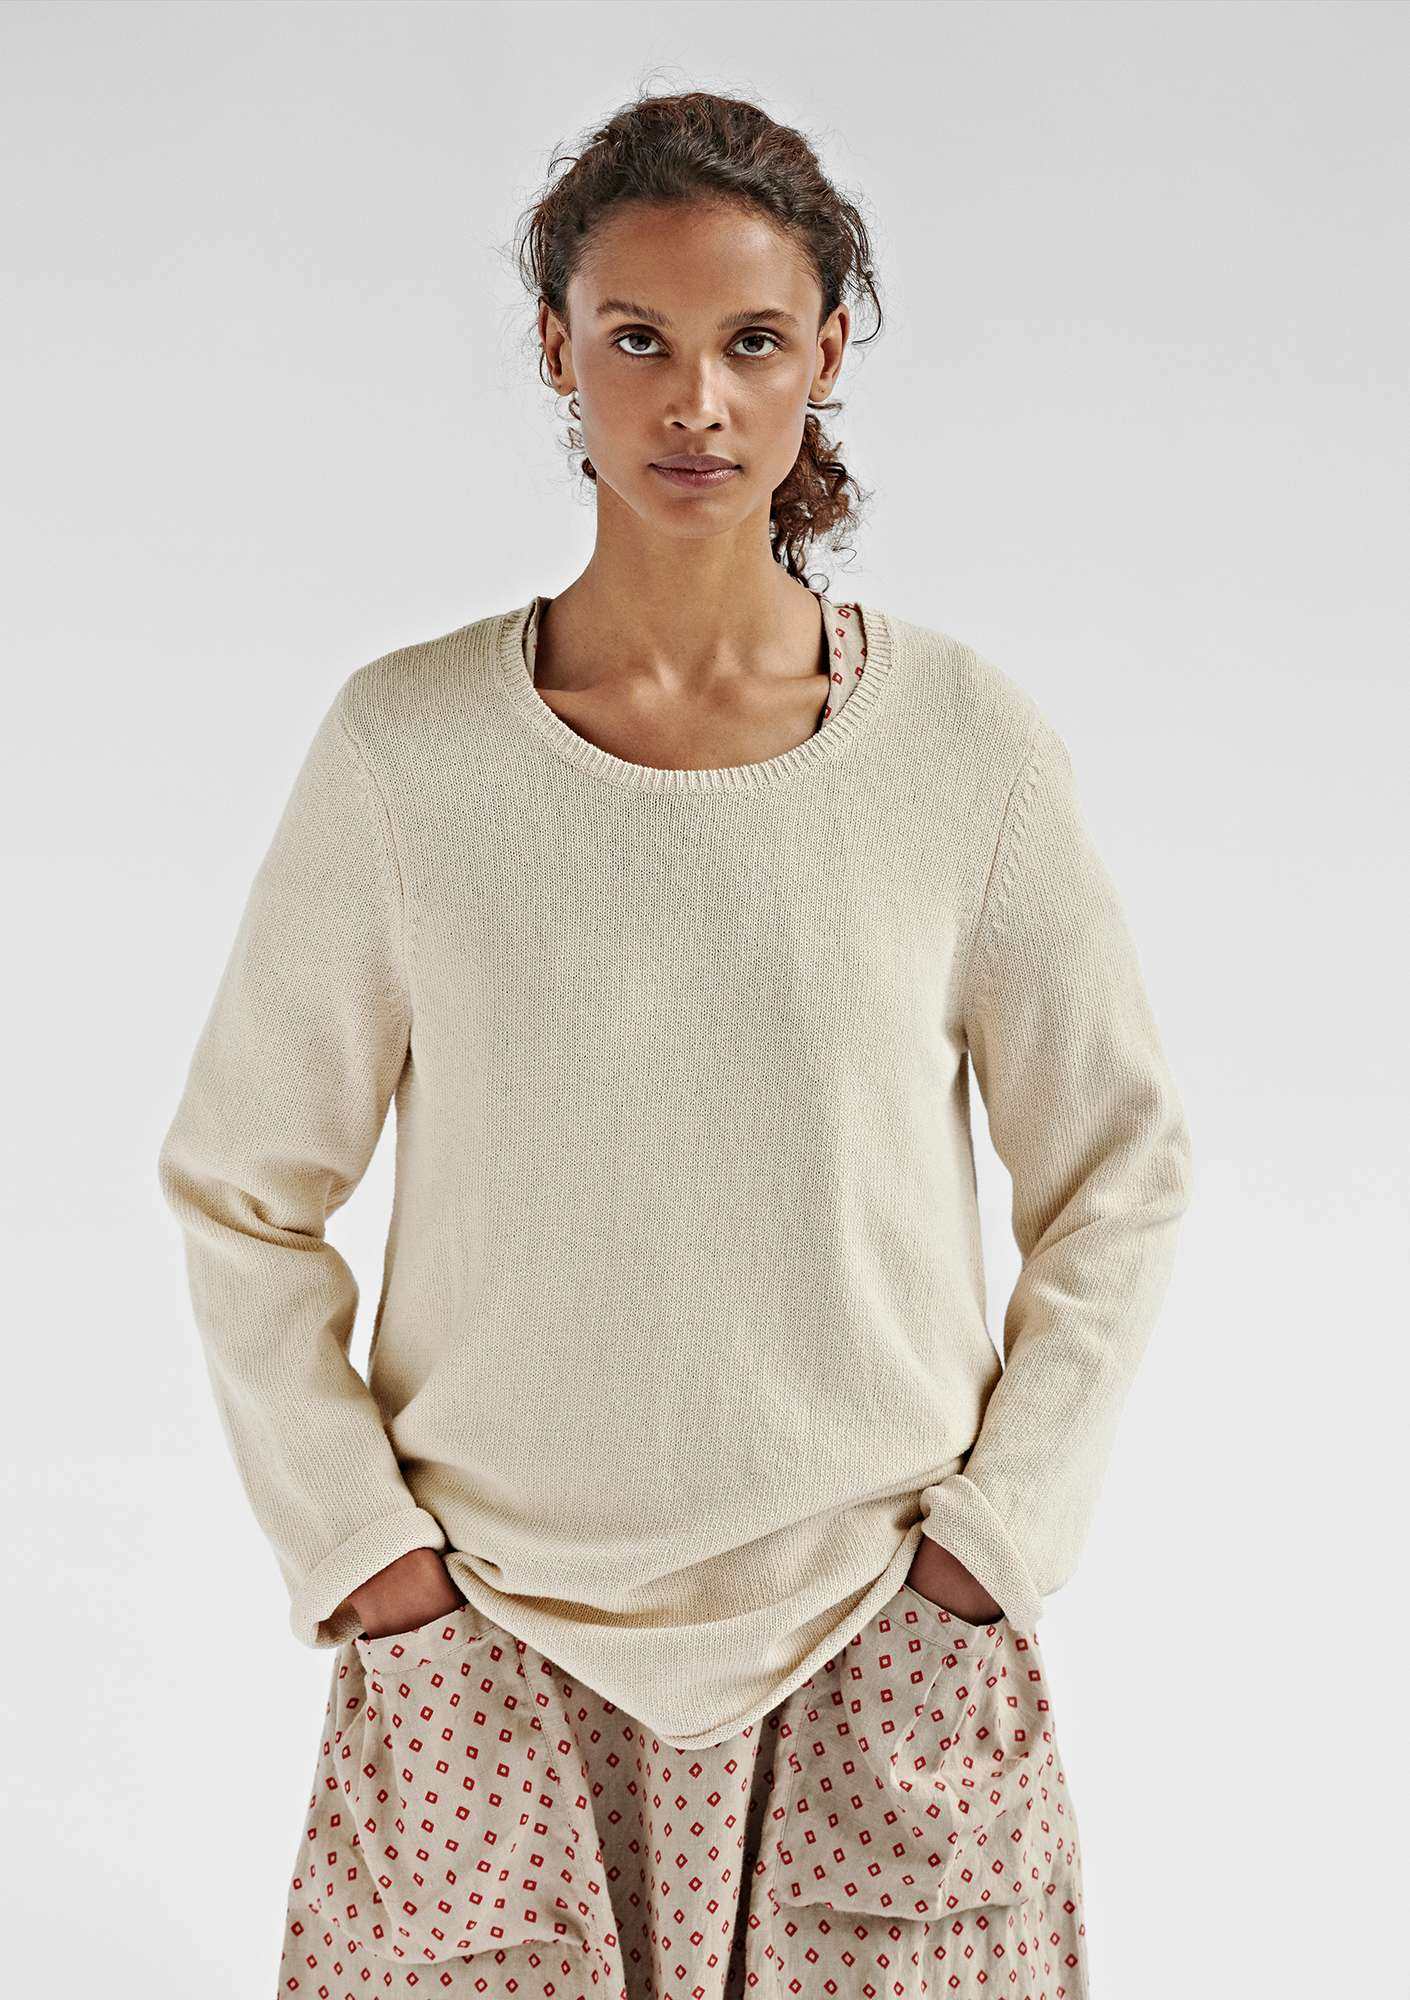 BÄSTIS sweater in organic cotton offwhite